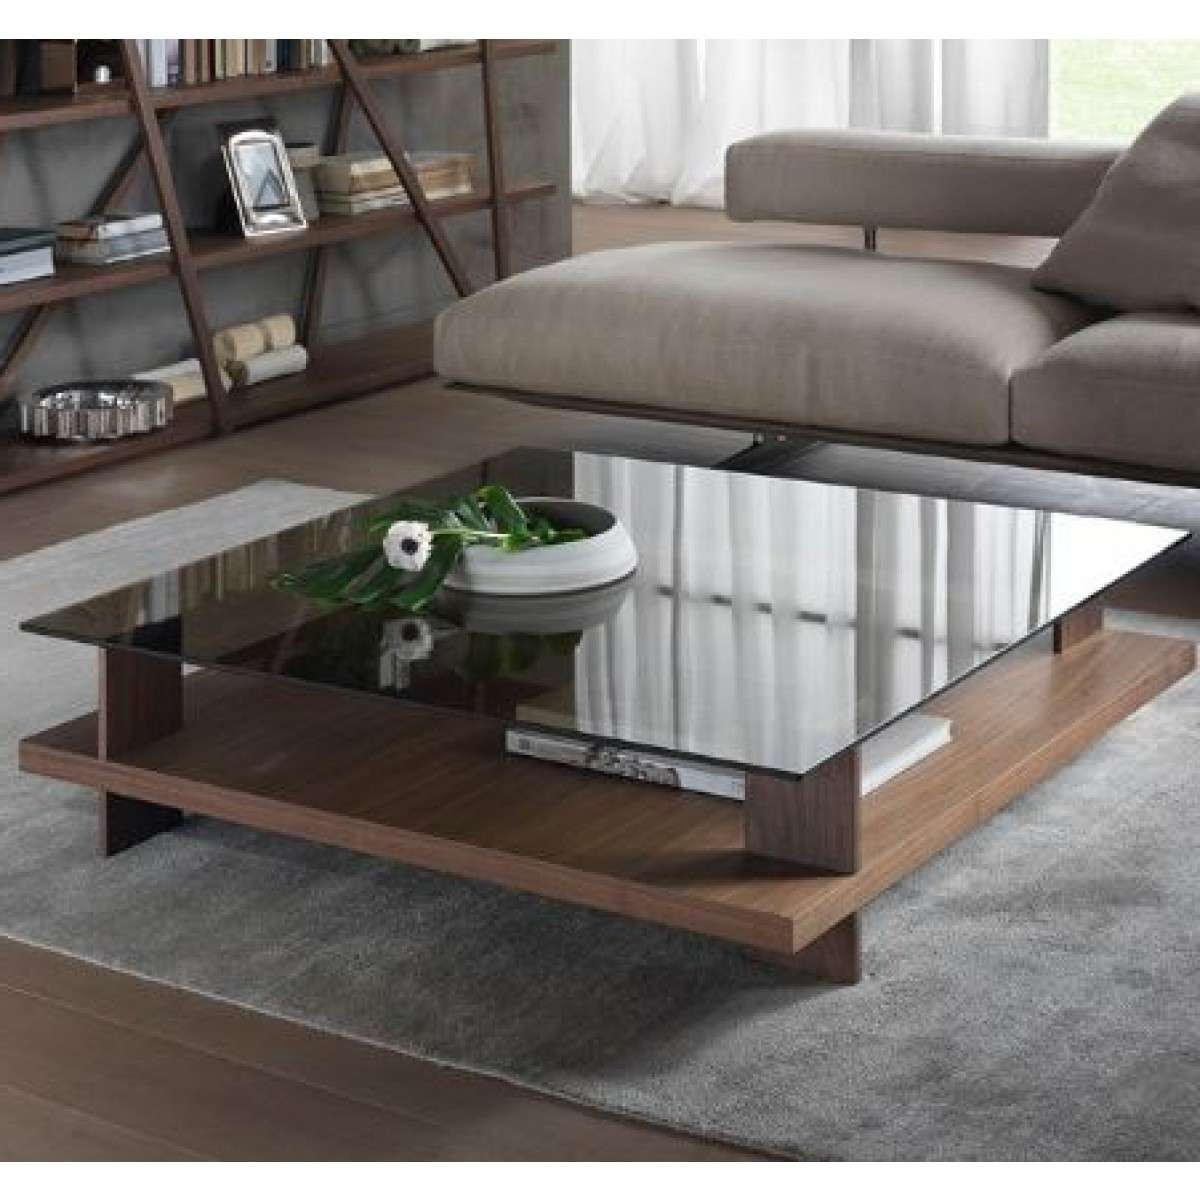 Coffee Tables : Img Wood Glass Coffee Table Woodgrain Reality Pertaining To 2017 Square Glass Coffee Tables (View 5 of 20)